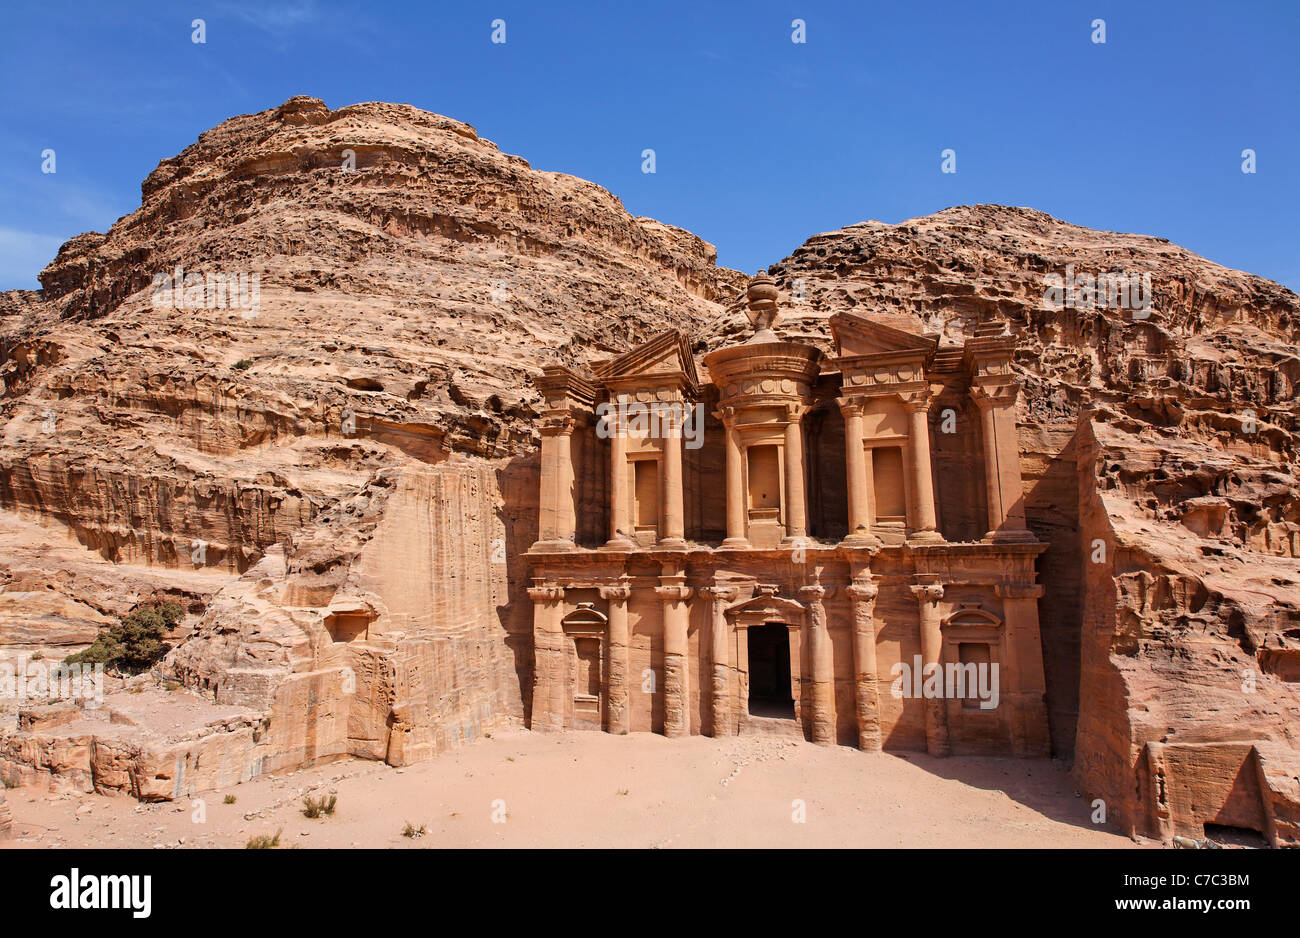 The Monastery, sculpted out of the rock, at Petra, Jordan - Stock Image